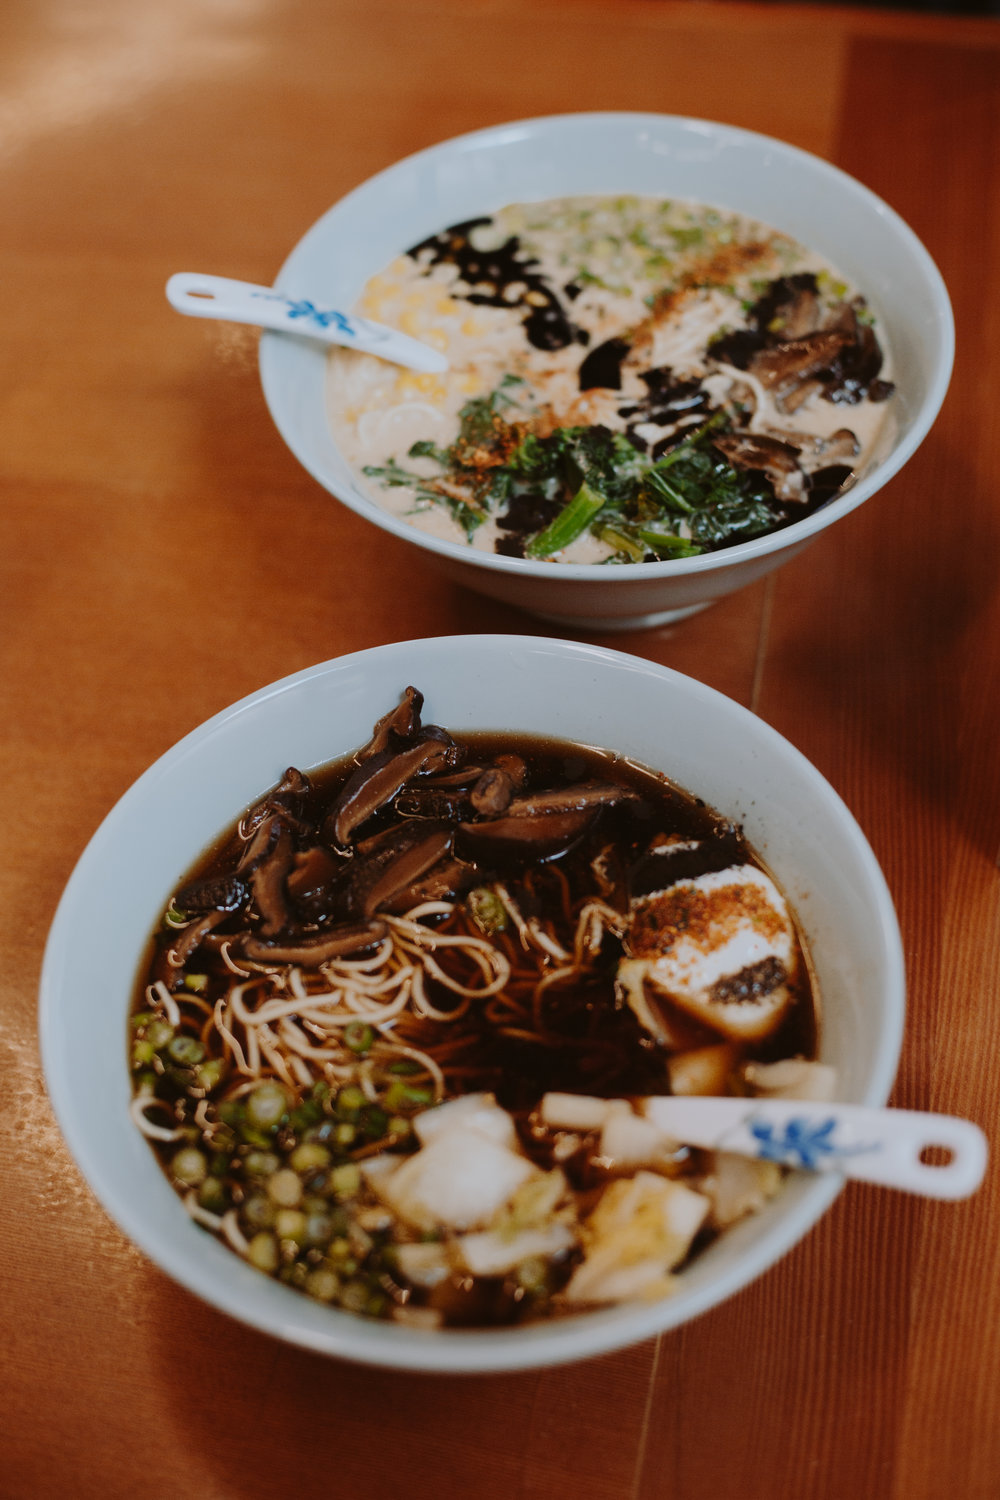 Boxer Ramen - With multiple locations throughout Portland, Boxer Ramen combines traditional Japanese flavors and recipes with vegetarian cuisine. Try the Shiitake Shoyu or Vegetarian Curry for the veggies out there or the Tonkotsu Shio or Spicy Red Miso for the meat eaters.